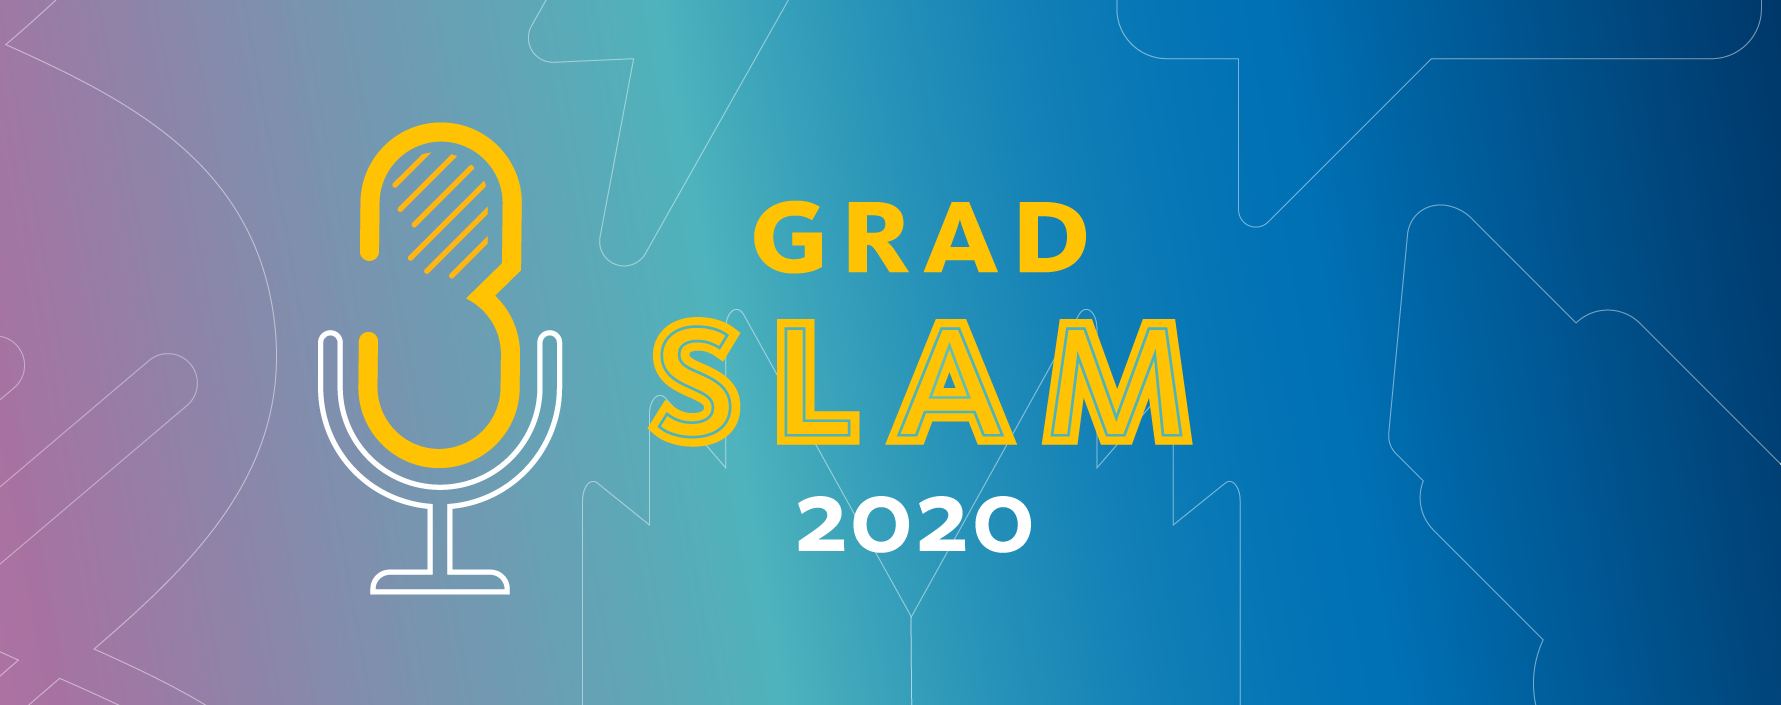 2020 Berkeley Grad Slam Competition | Berkeley Graduate Division with Berkeley Academic Calendar 2020